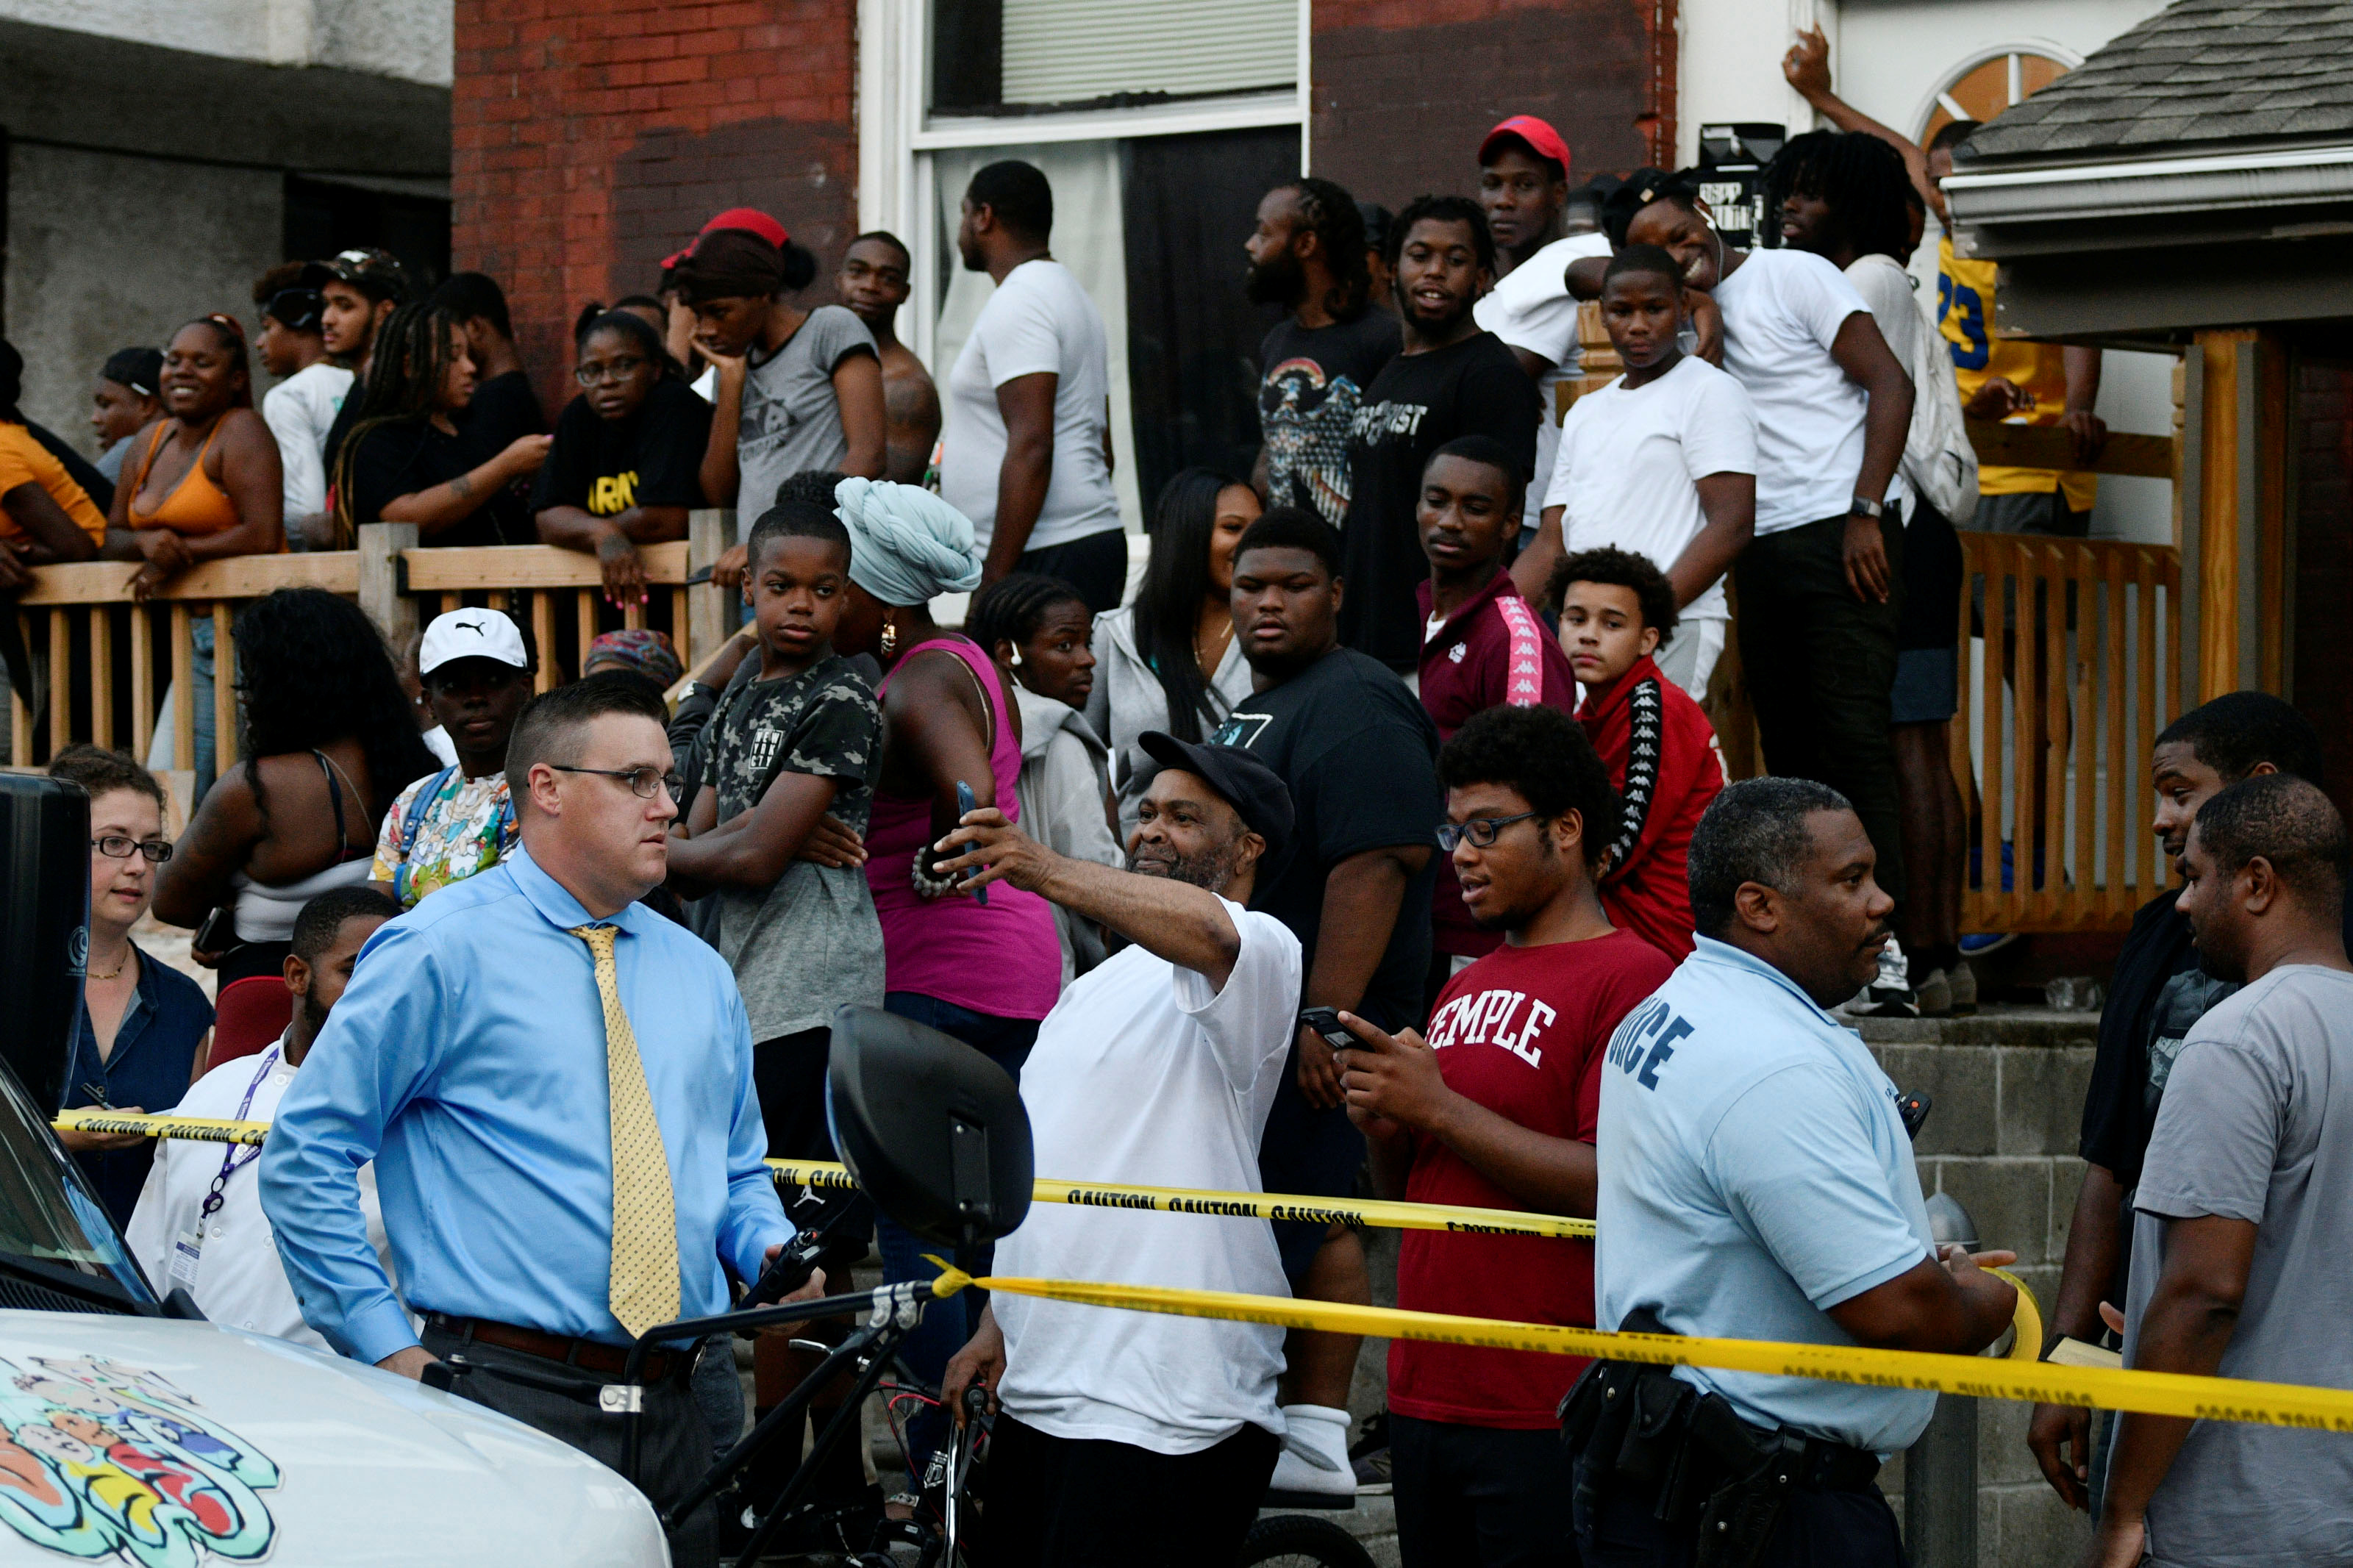 People gather during an active shooter situation, where Philadelphia police officers were shot during a drug raid on a home, in Philadelphia, Pennsylvania, U.S. August 14, 2019. REUTERS/Bastiaan Slabbers